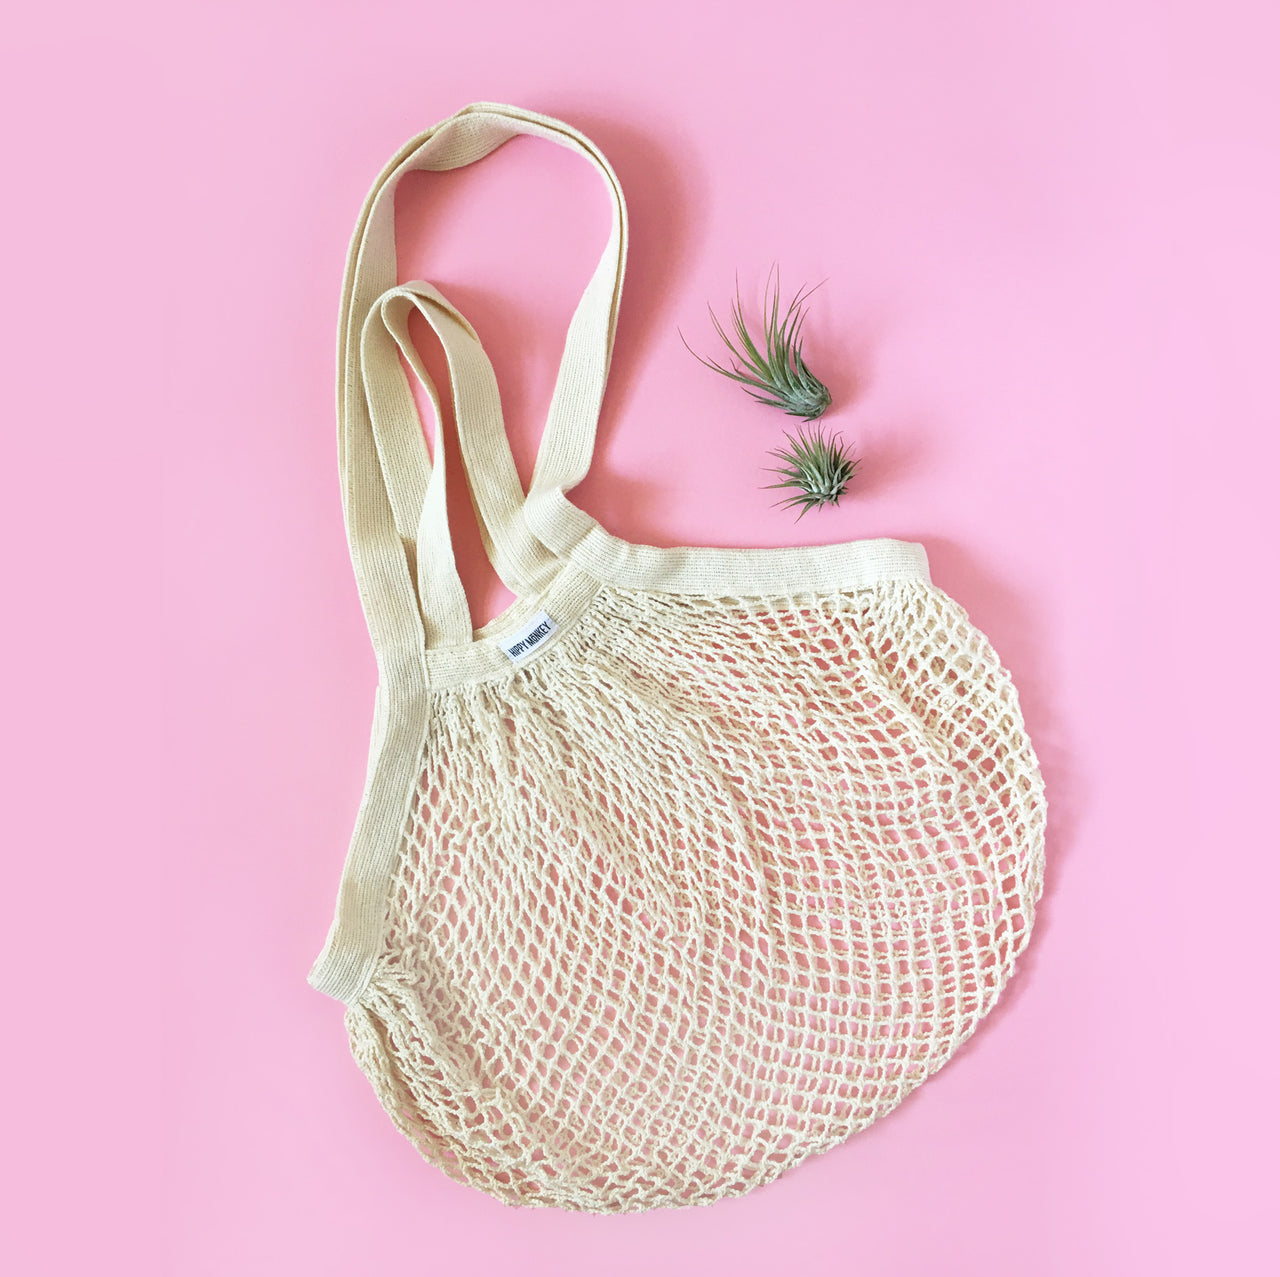 100% Organic Cotton String Net Market Bag with Double Handle